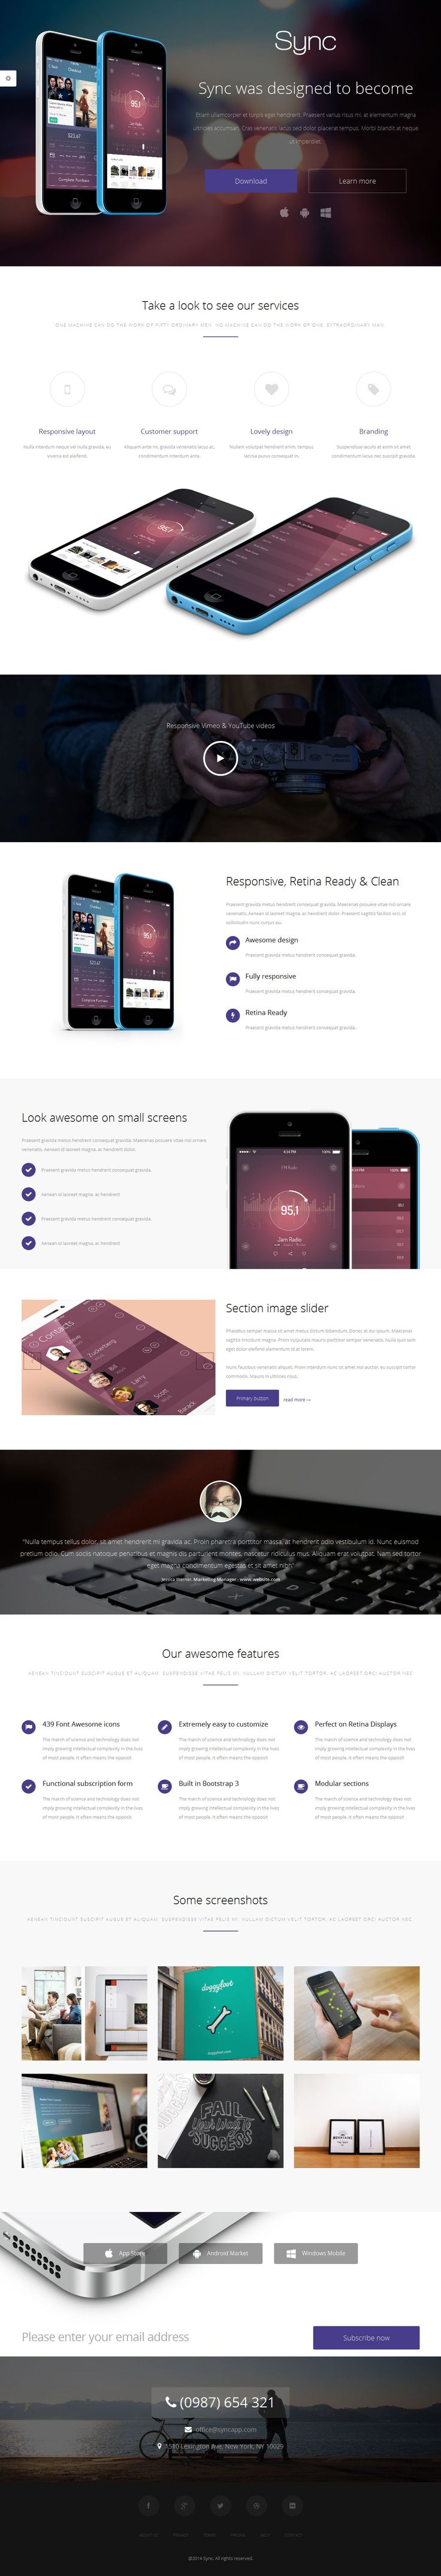 Sync - Responsive Landing Page Template | Buy and Download: http://themeforest.net/item/sync-responsive-landing-page/7863875?WT.ac=category_thumb&WT.z_author=creativemyway&ref=ksioks